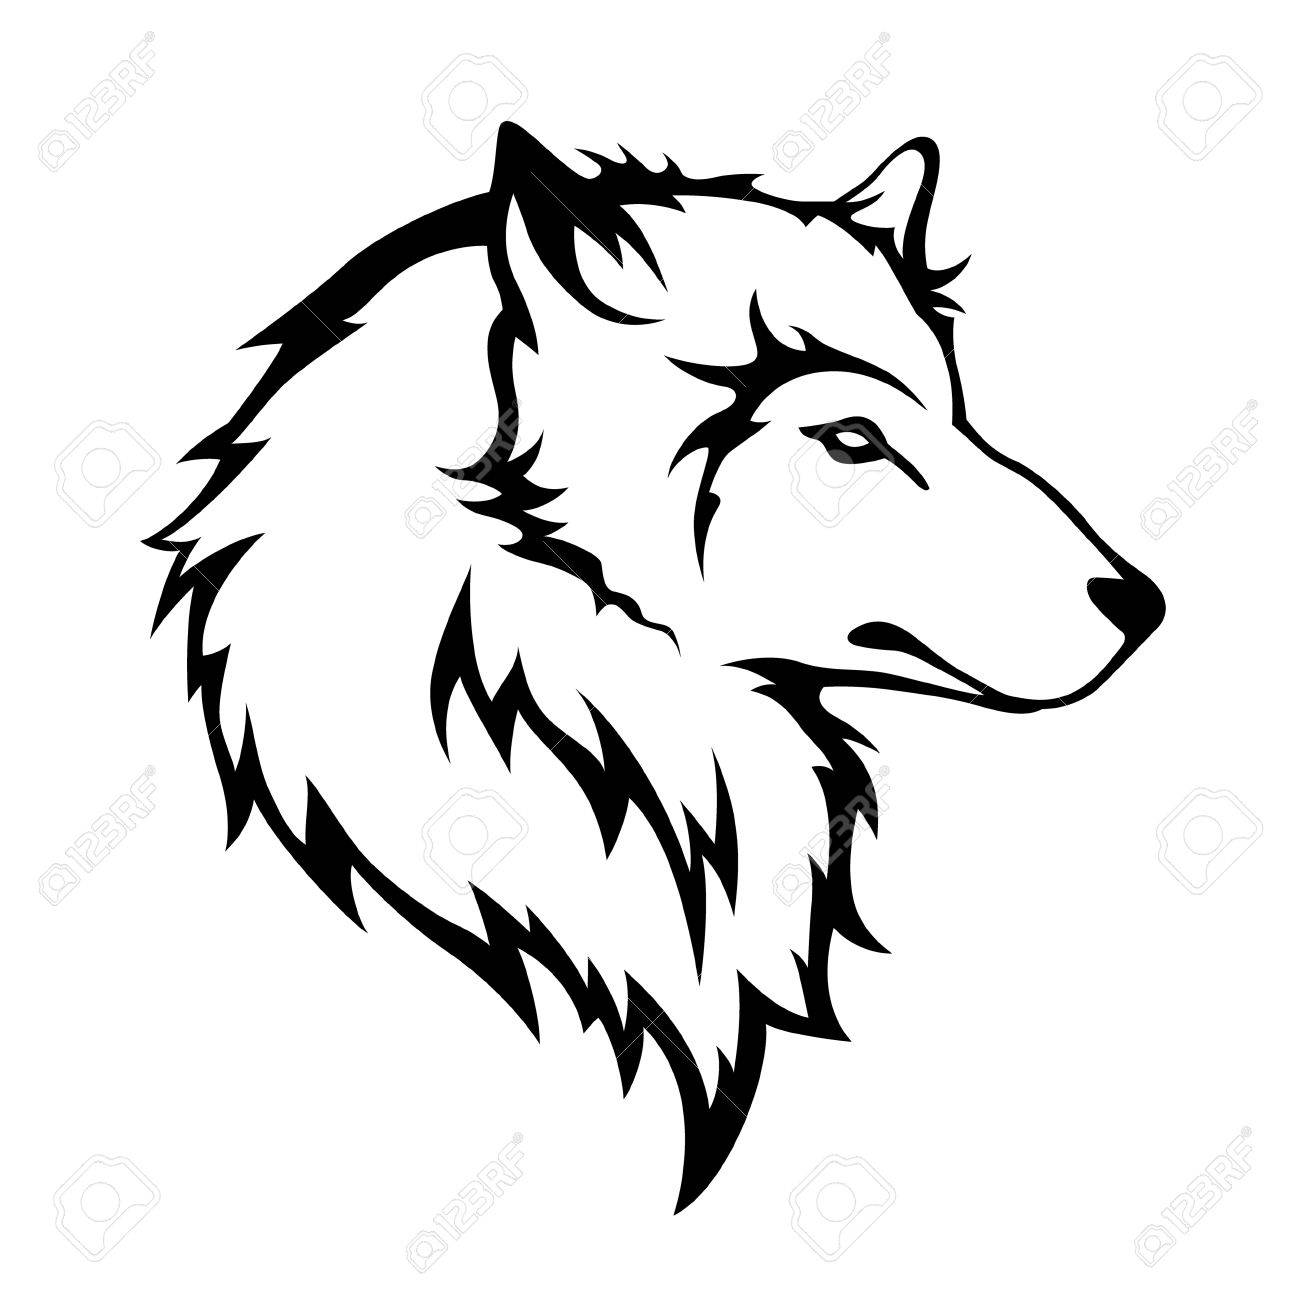 1300x1300 Stylize Wolfs Head Isolated On White Background Royalty Free